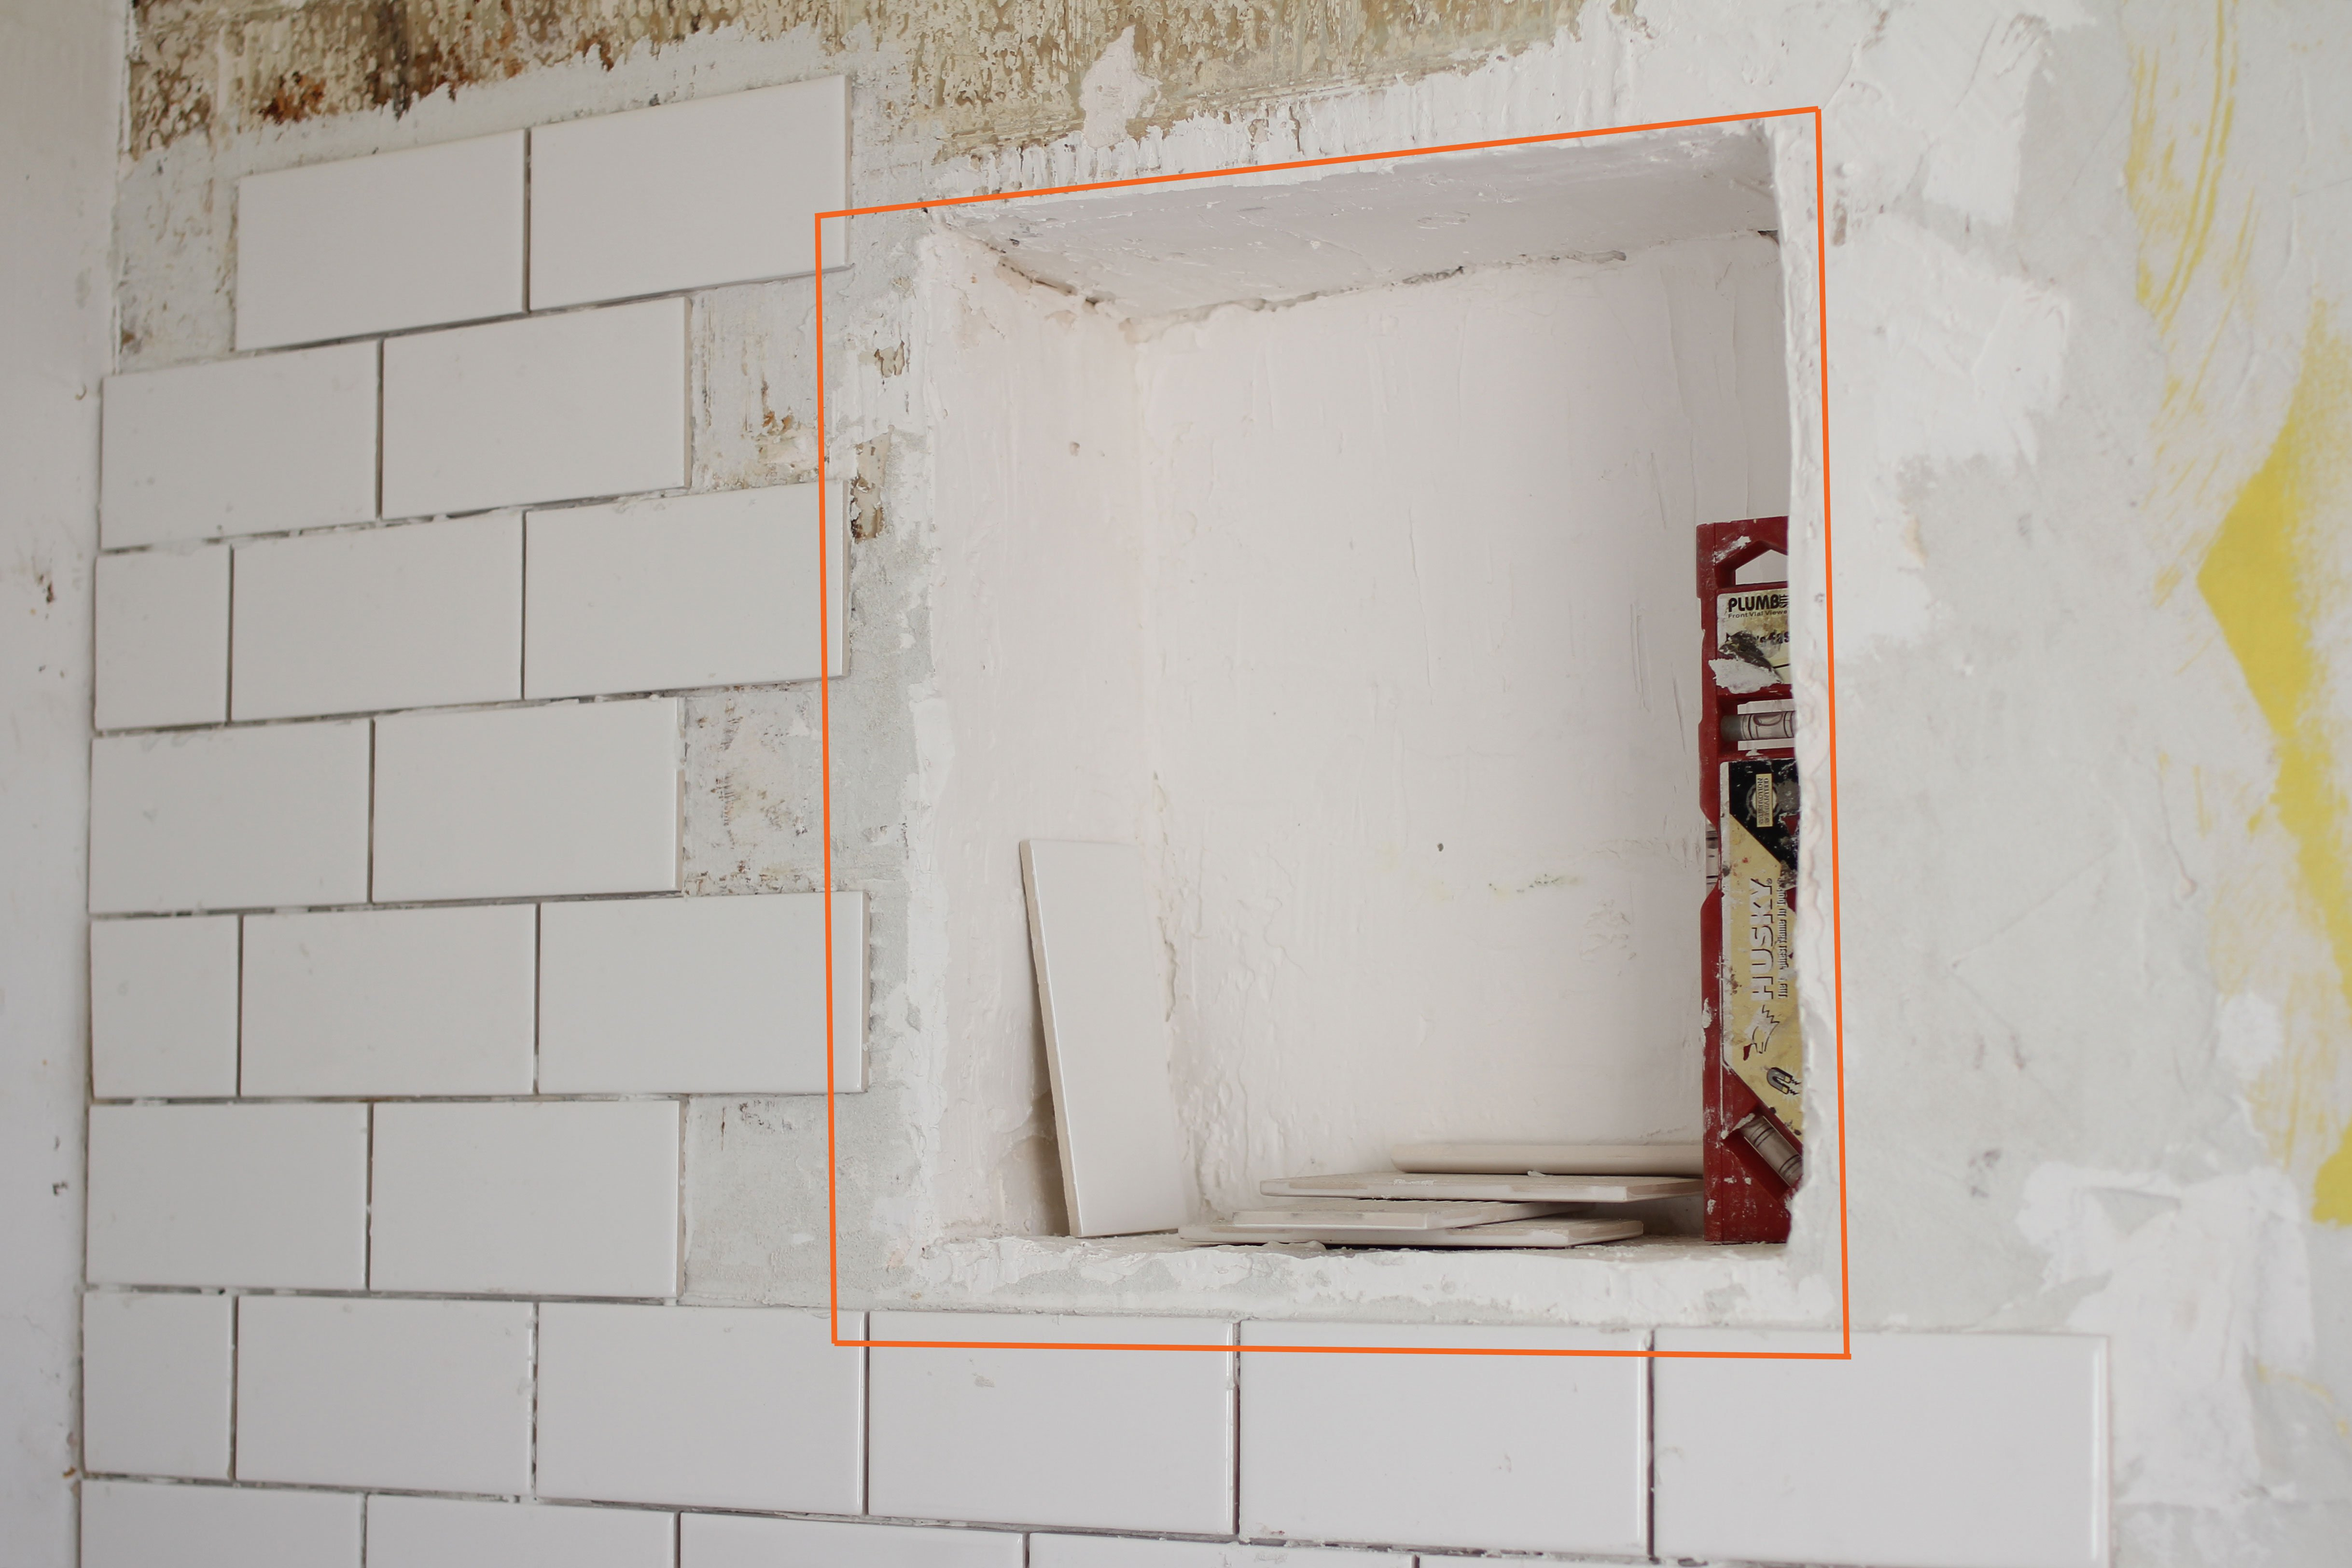 DIY Renovation Project: How To Build A Recessed Shower Shelf | Apartment  Therapy